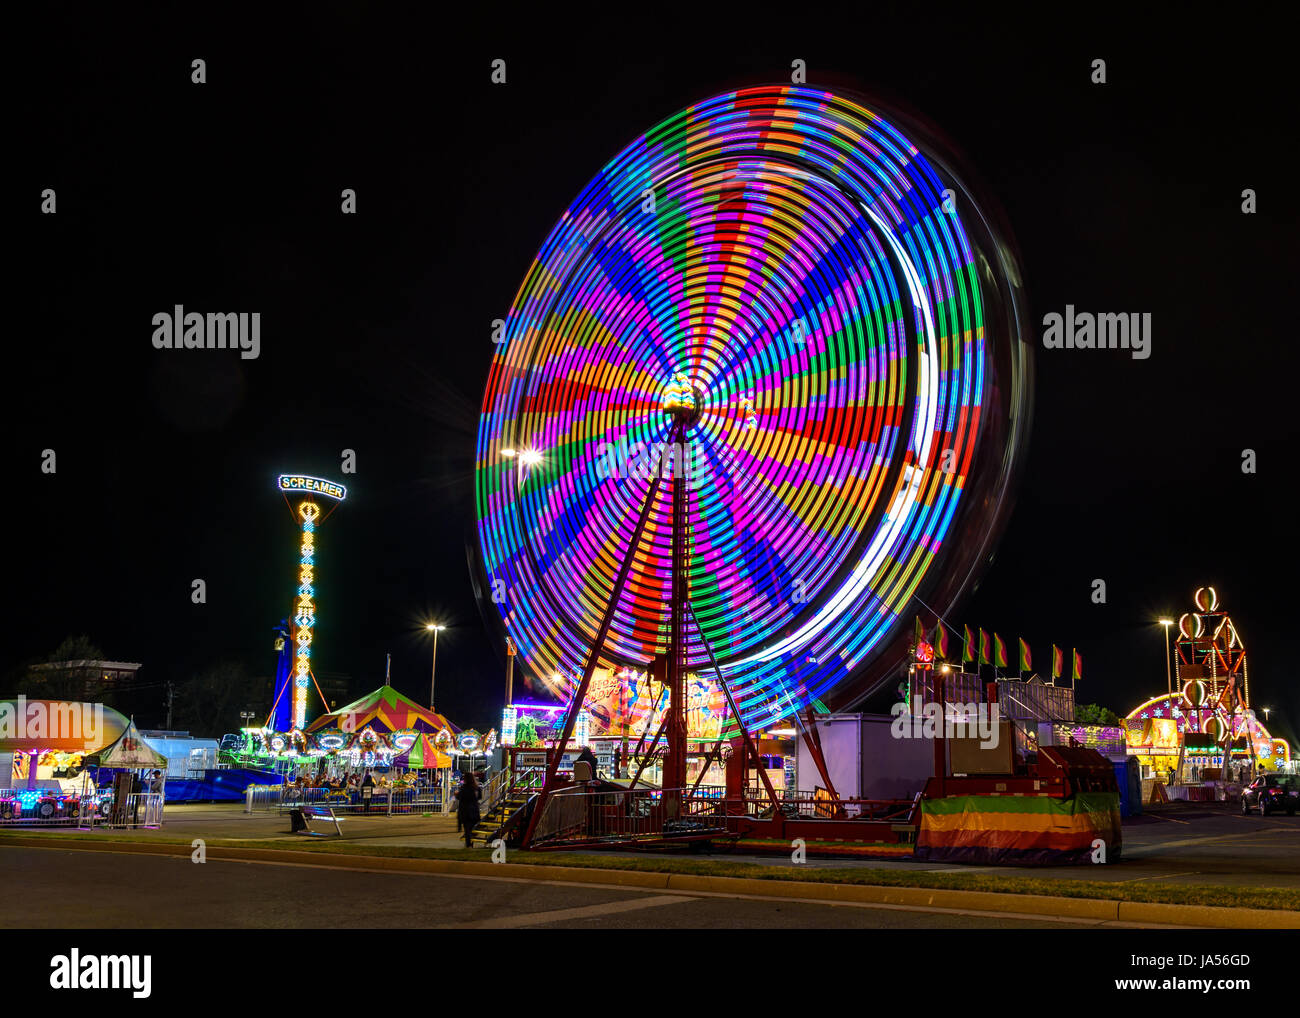 What goes up, must come down; spinning wheel gotta go round. Stock Photo